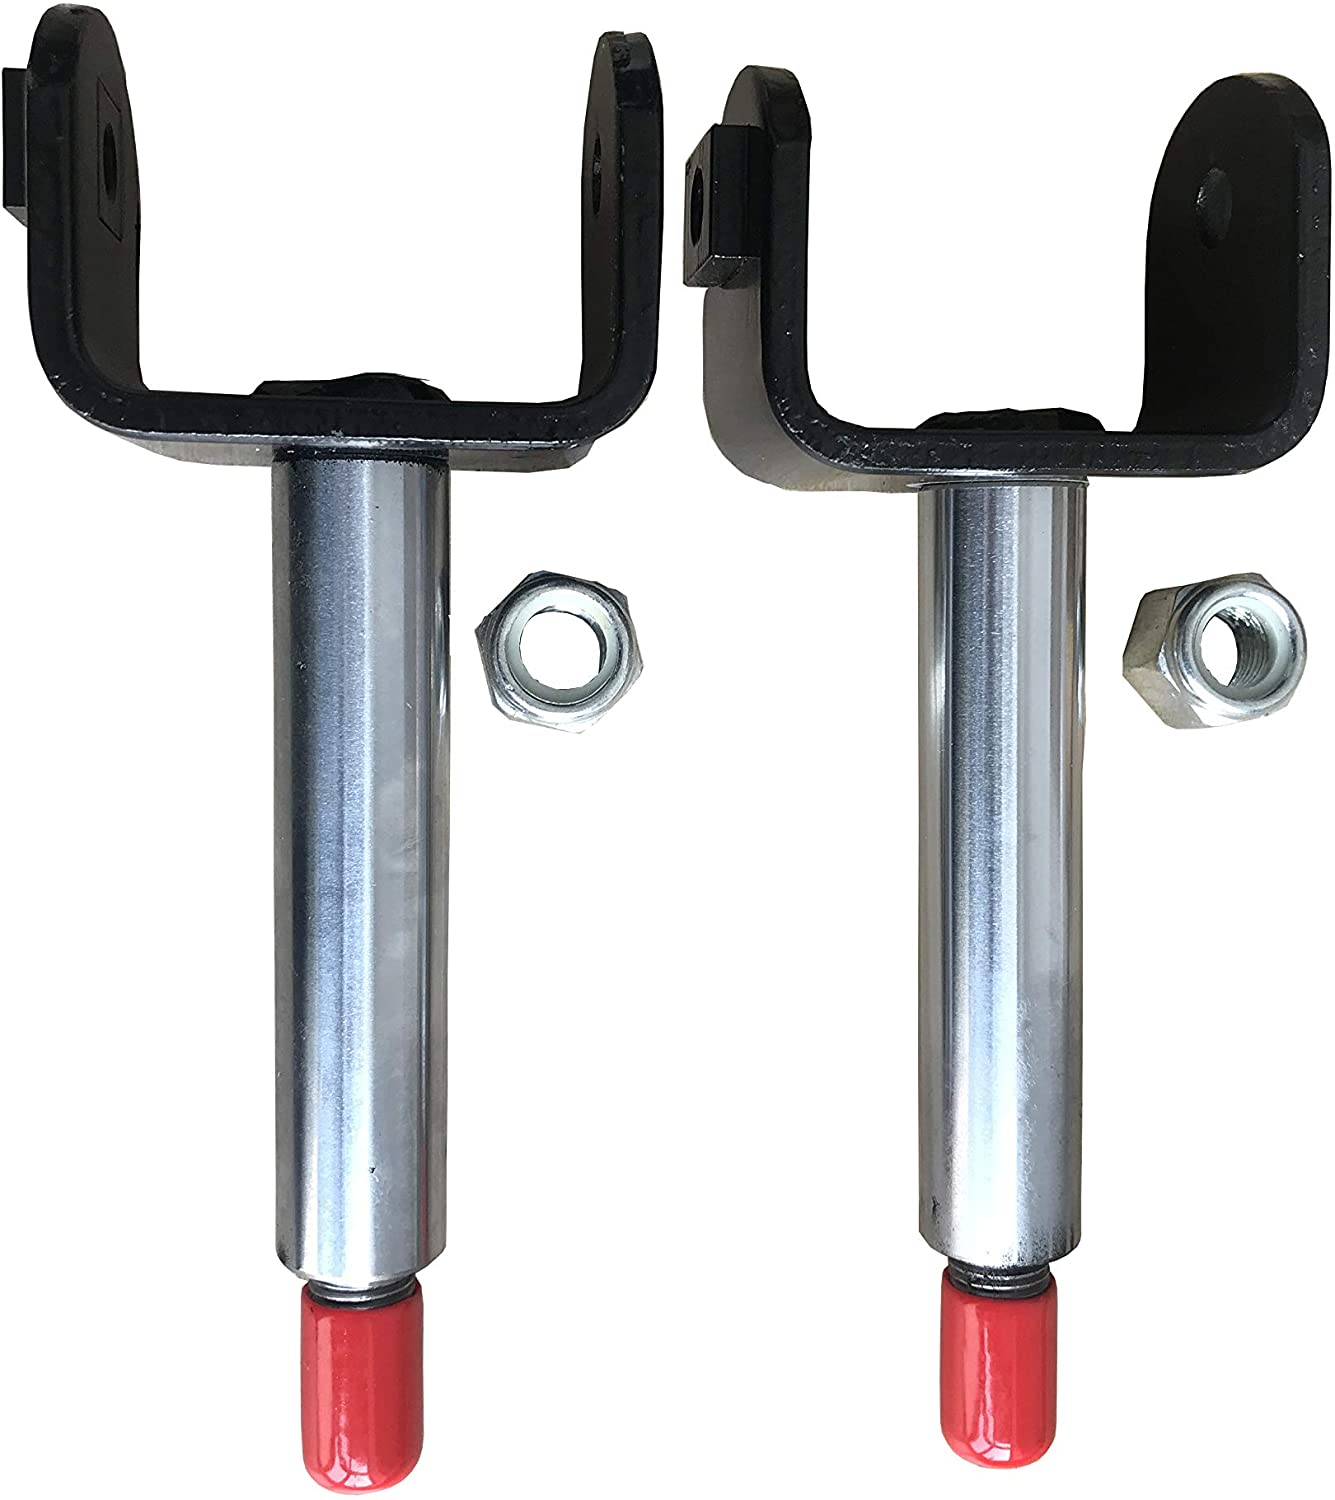 Dr.Acces Club Car Percedent King Pin for Club Car Golf Carts 2004 & Up Gas/Electric OEM#102287201 103638601